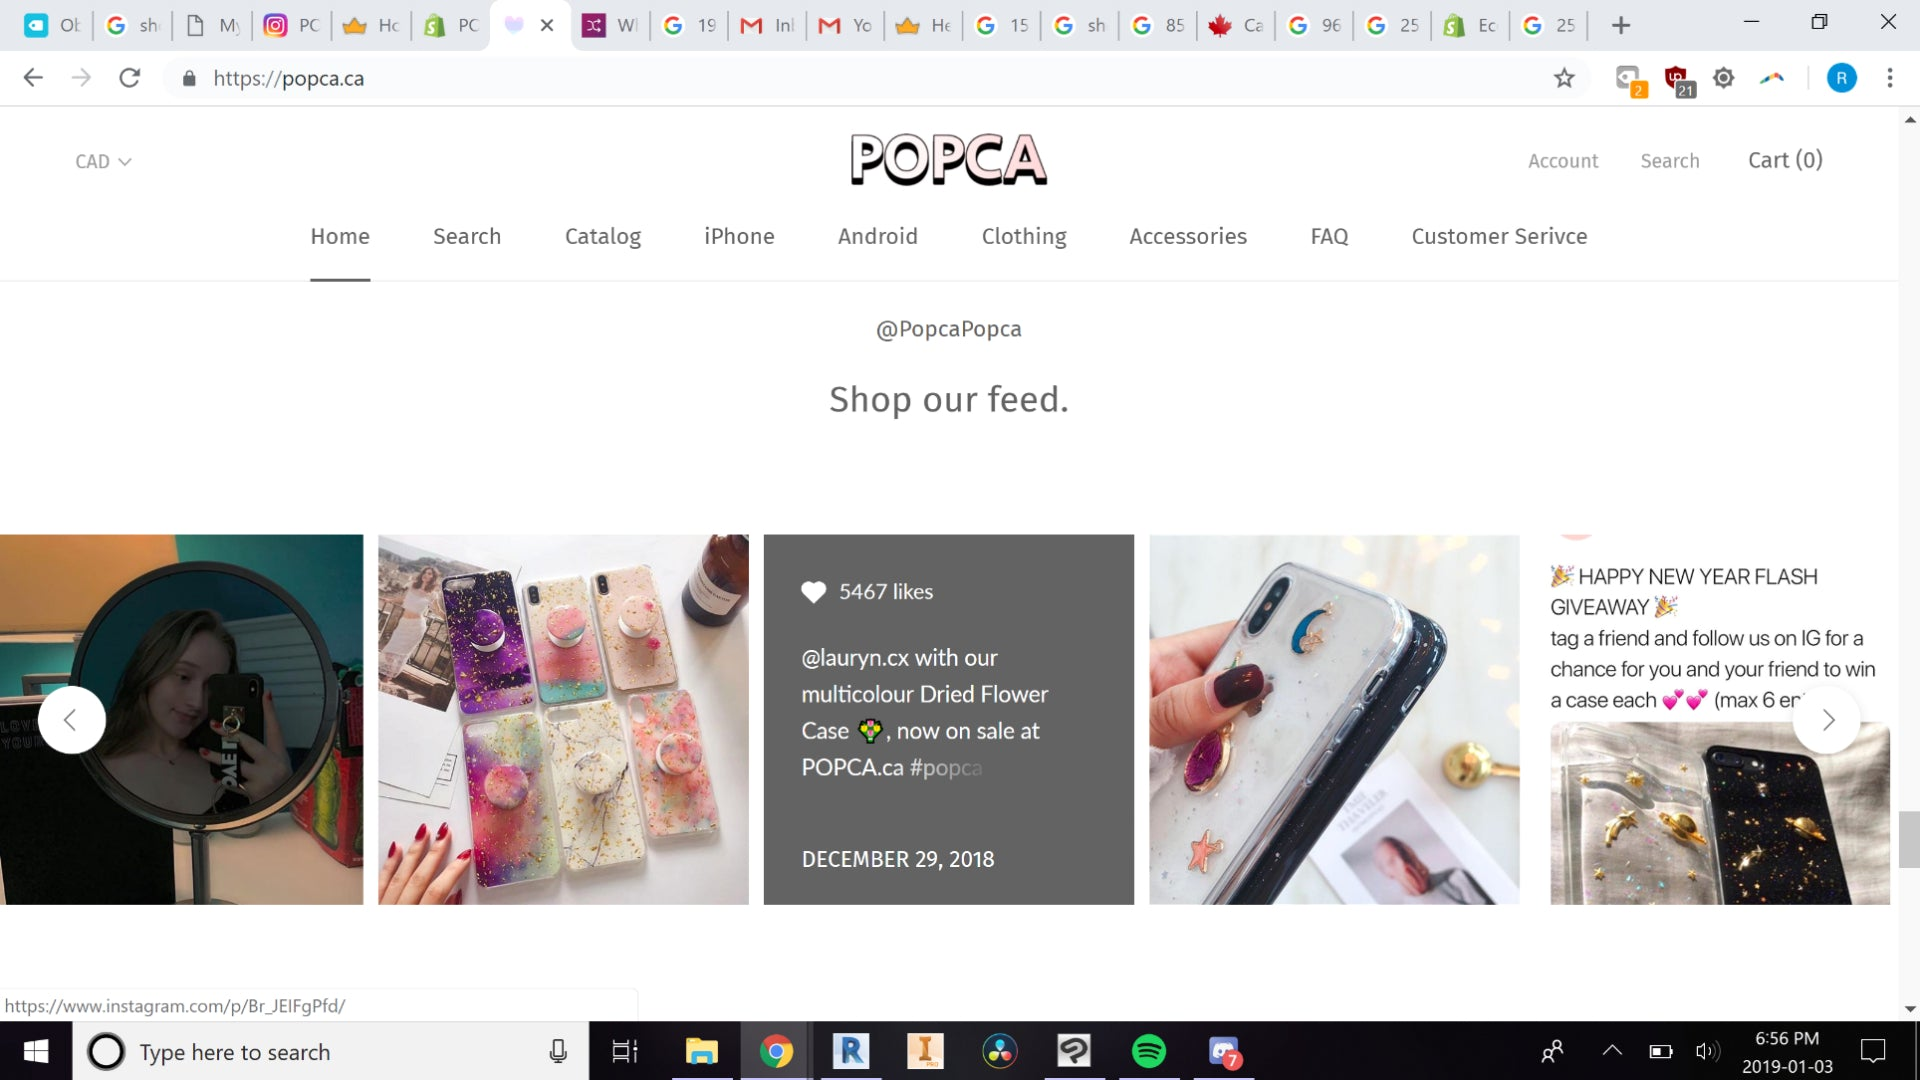 POPCA.ca (Aesthetic & Well Branded Dropshipping) Screenshot - 2